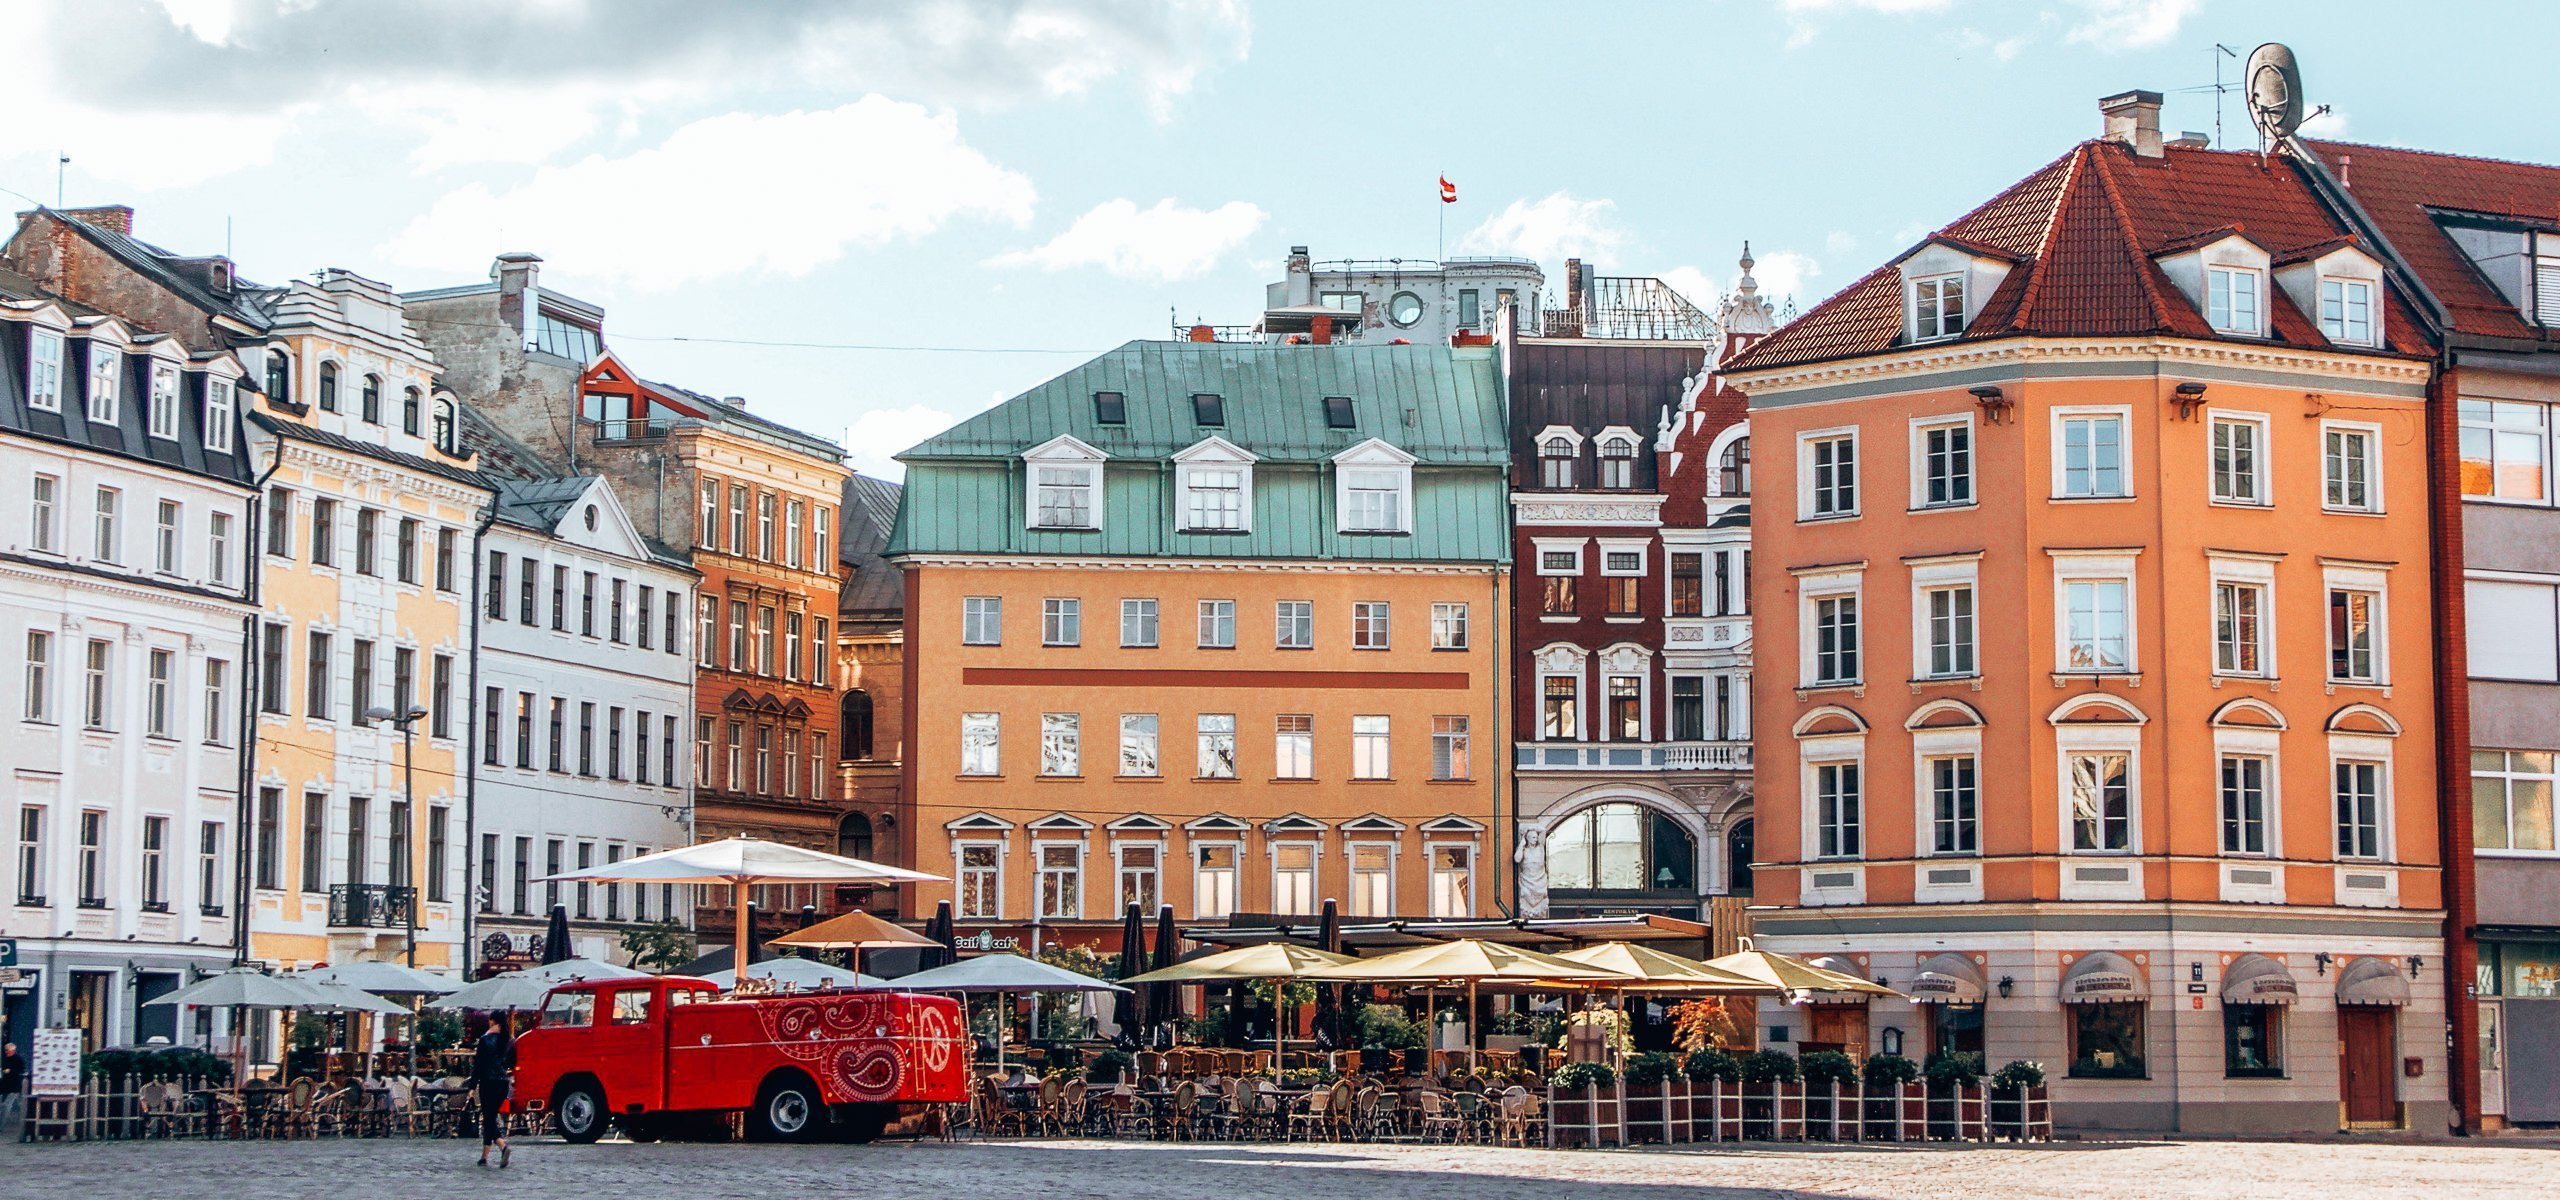 Colourful facades in the Old Town of Riga, Latvia